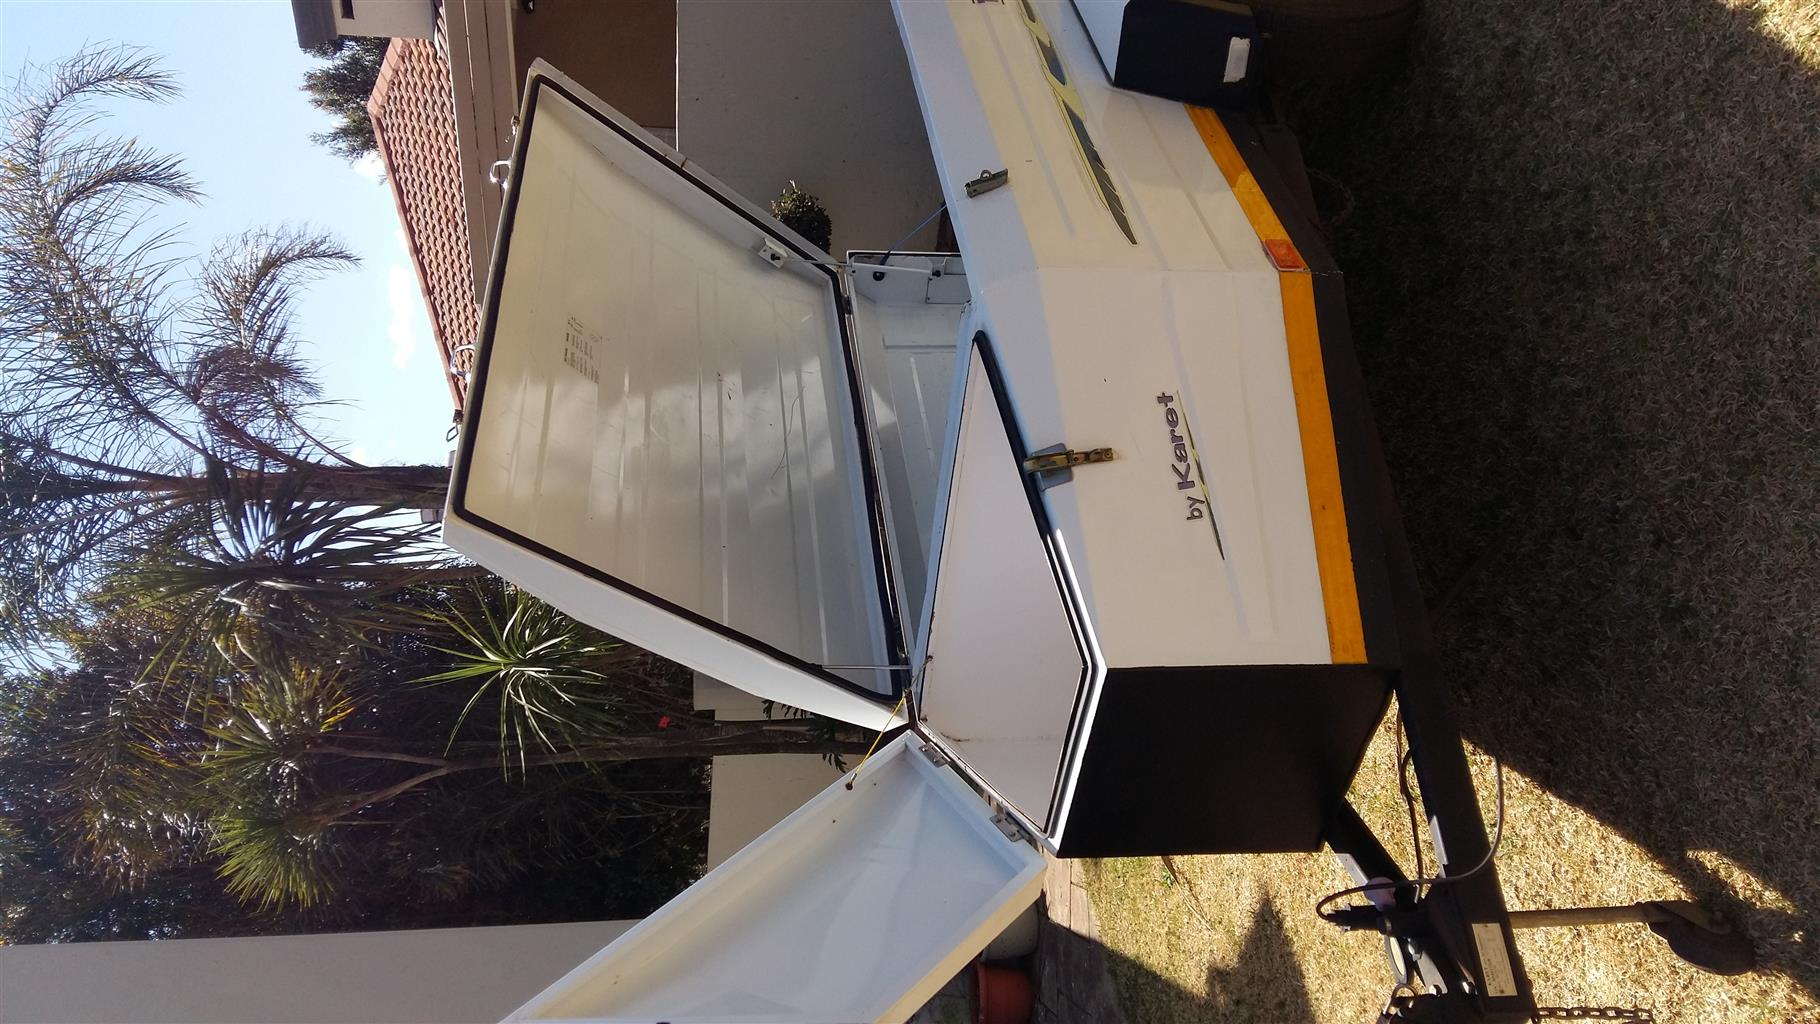 Karet Town & Country Camp Master MK2   1800TX Trailer with Nosecone